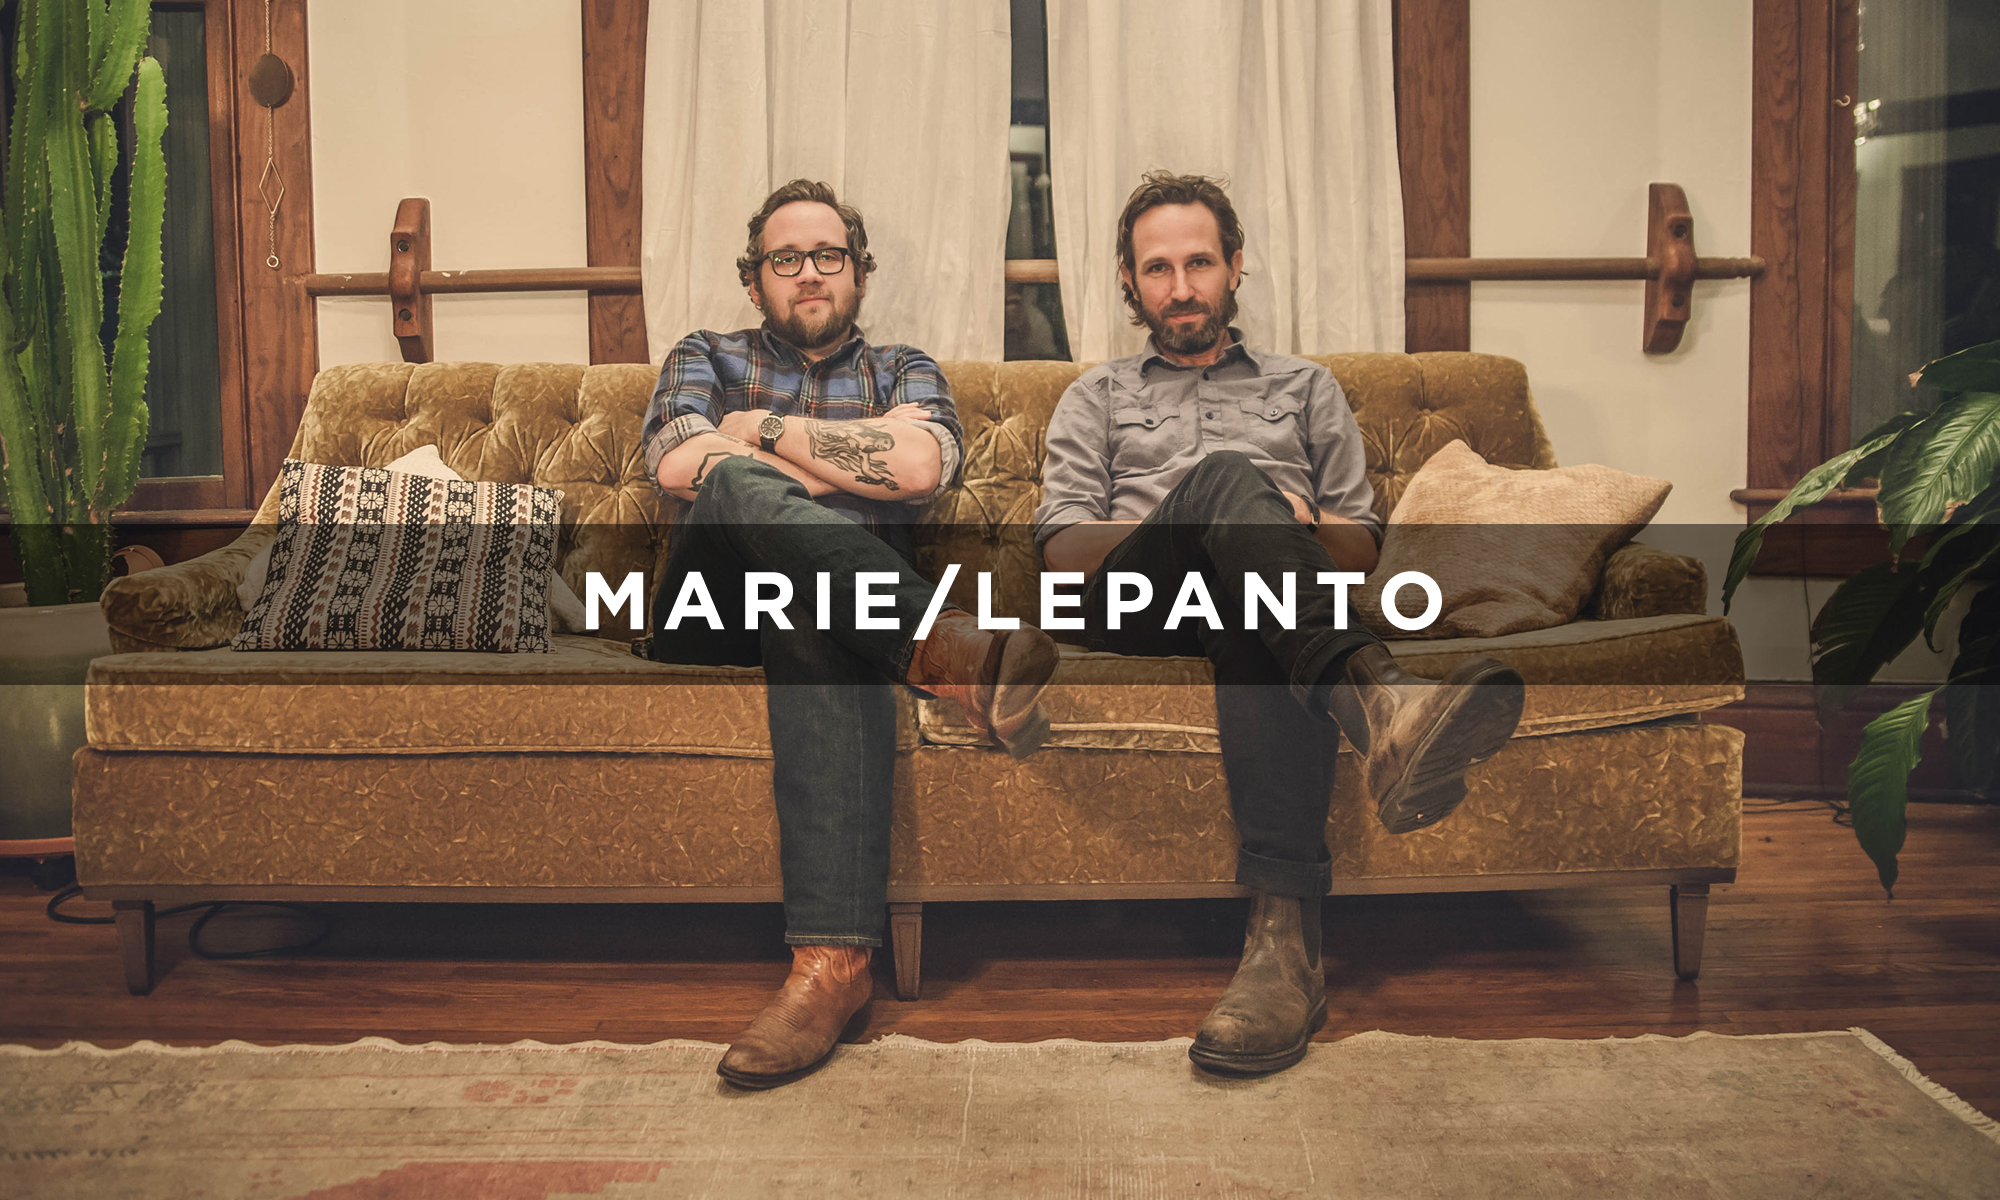 Marie Lepanto Is Will Johnson And Justin Peter Kinkel